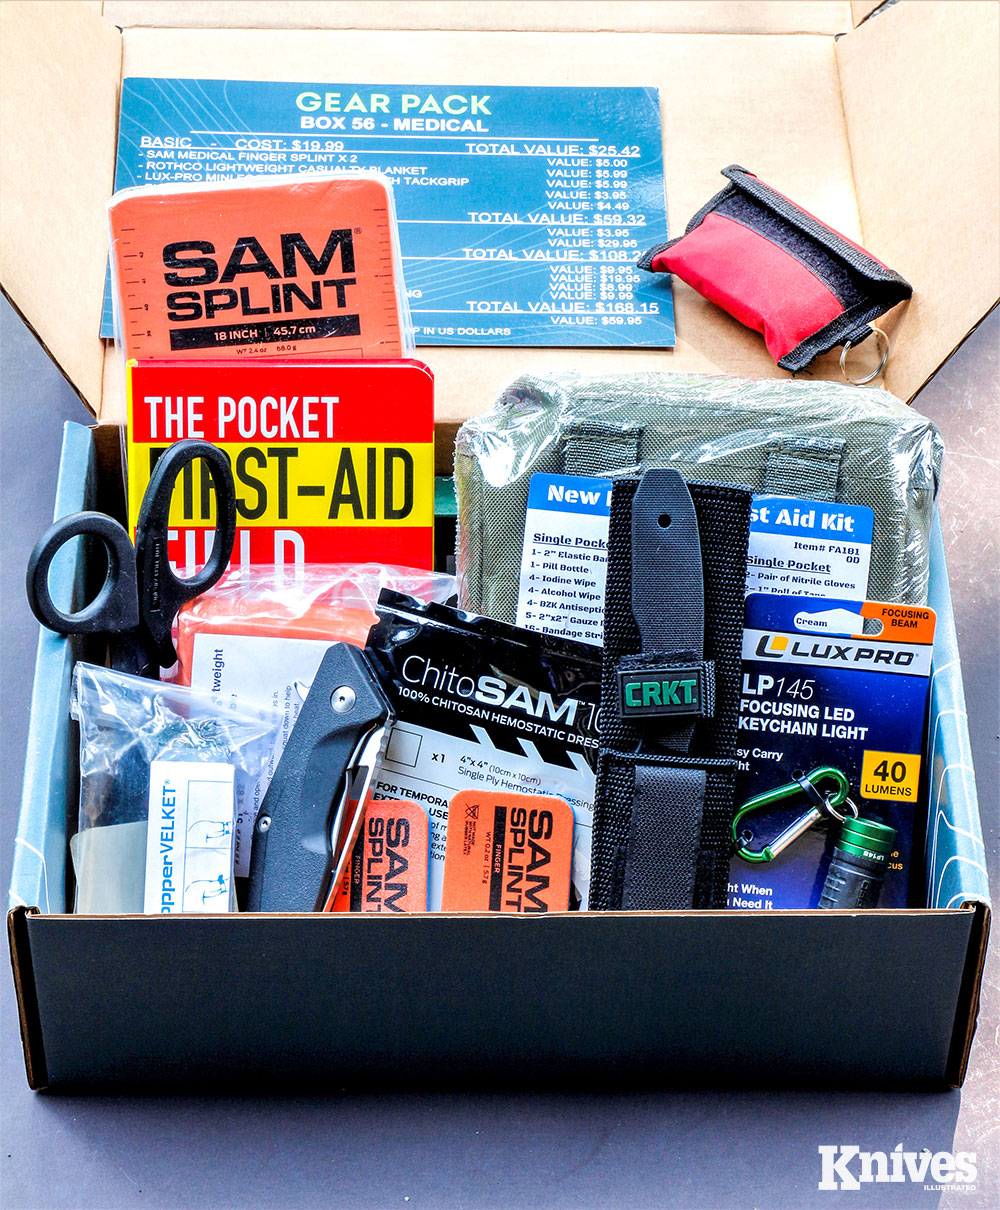 Over time, a Gear Pack subscriber can acquire lots of useful gear by receiving a box once a month. The contents of Box 56—Medical contains many useful first-aid products.